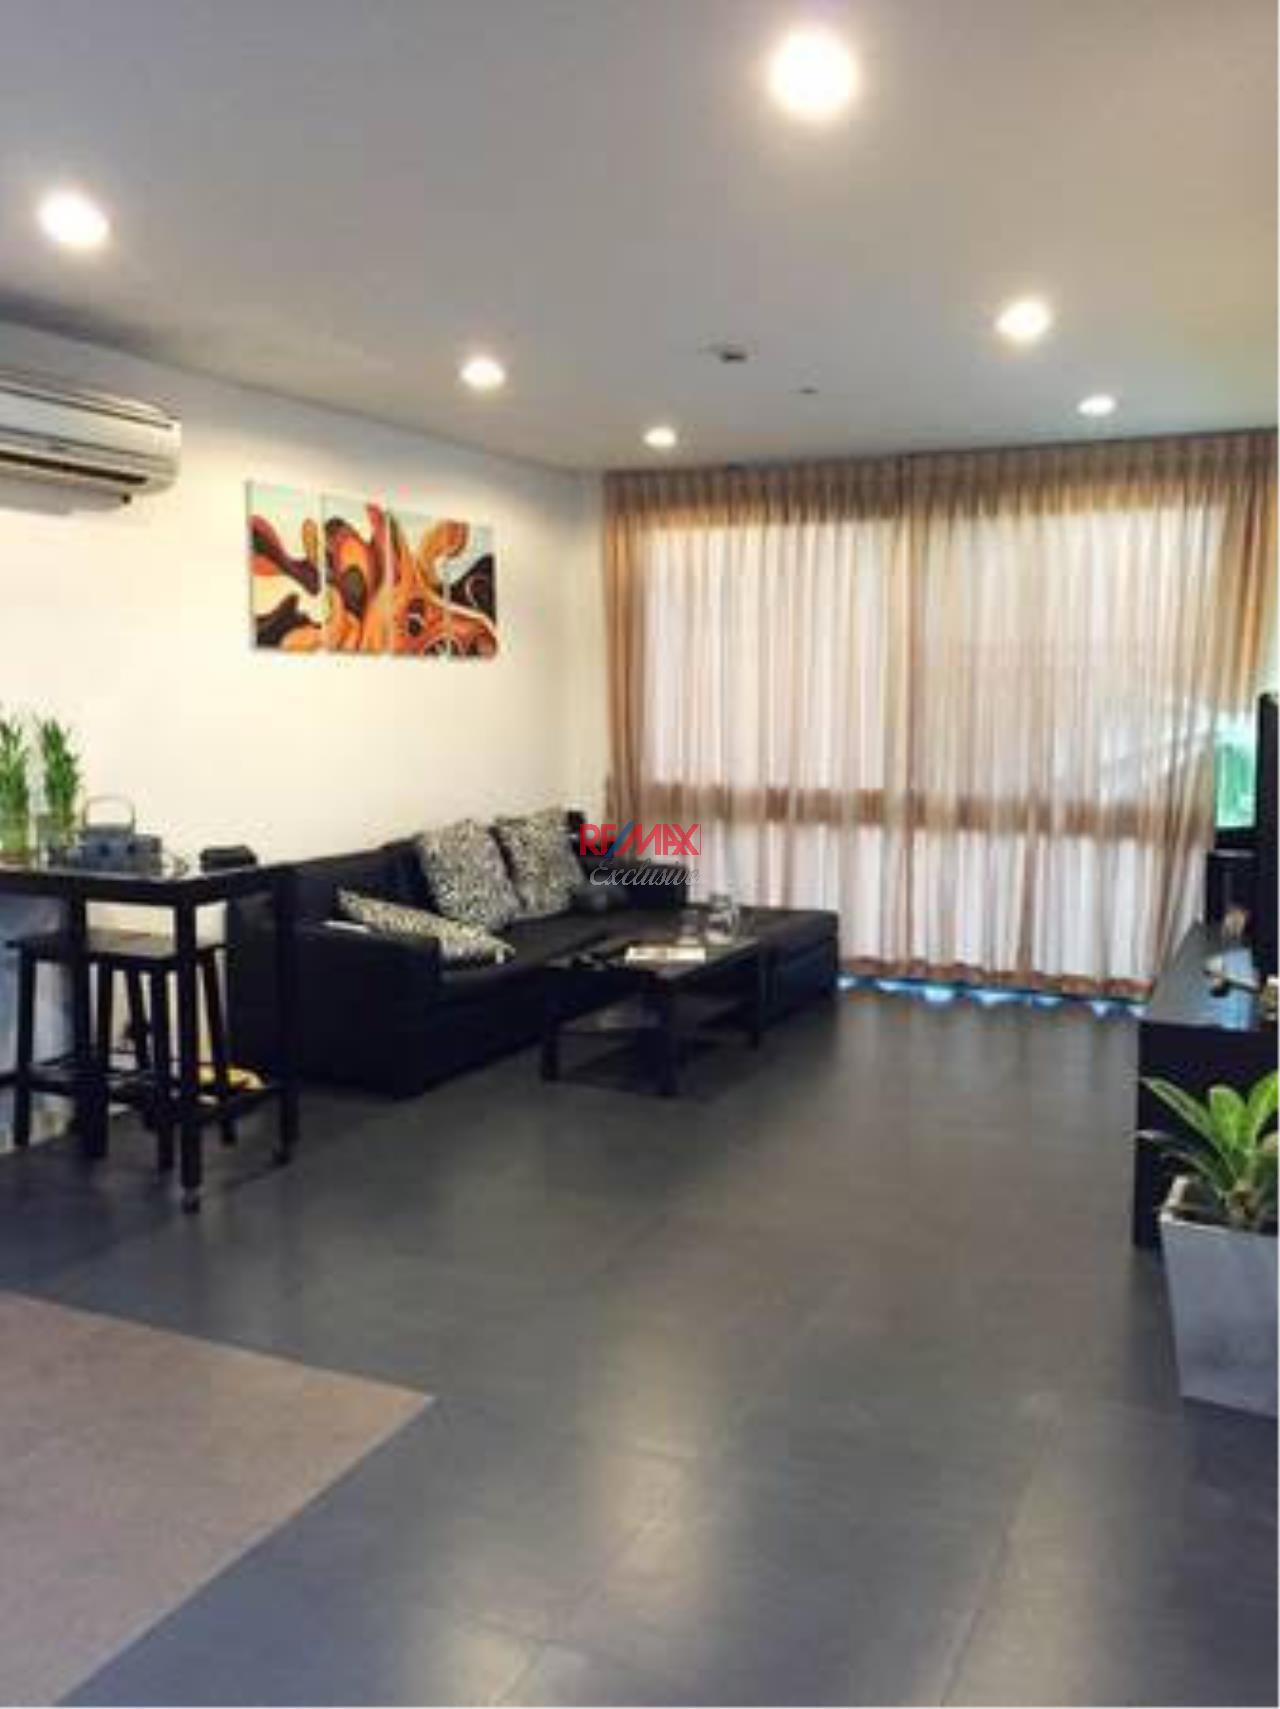 RE/MAX Exclusive Agency's Baan Saran 1 Bedroom Big Size for sale Good Price 4200000 THB 6